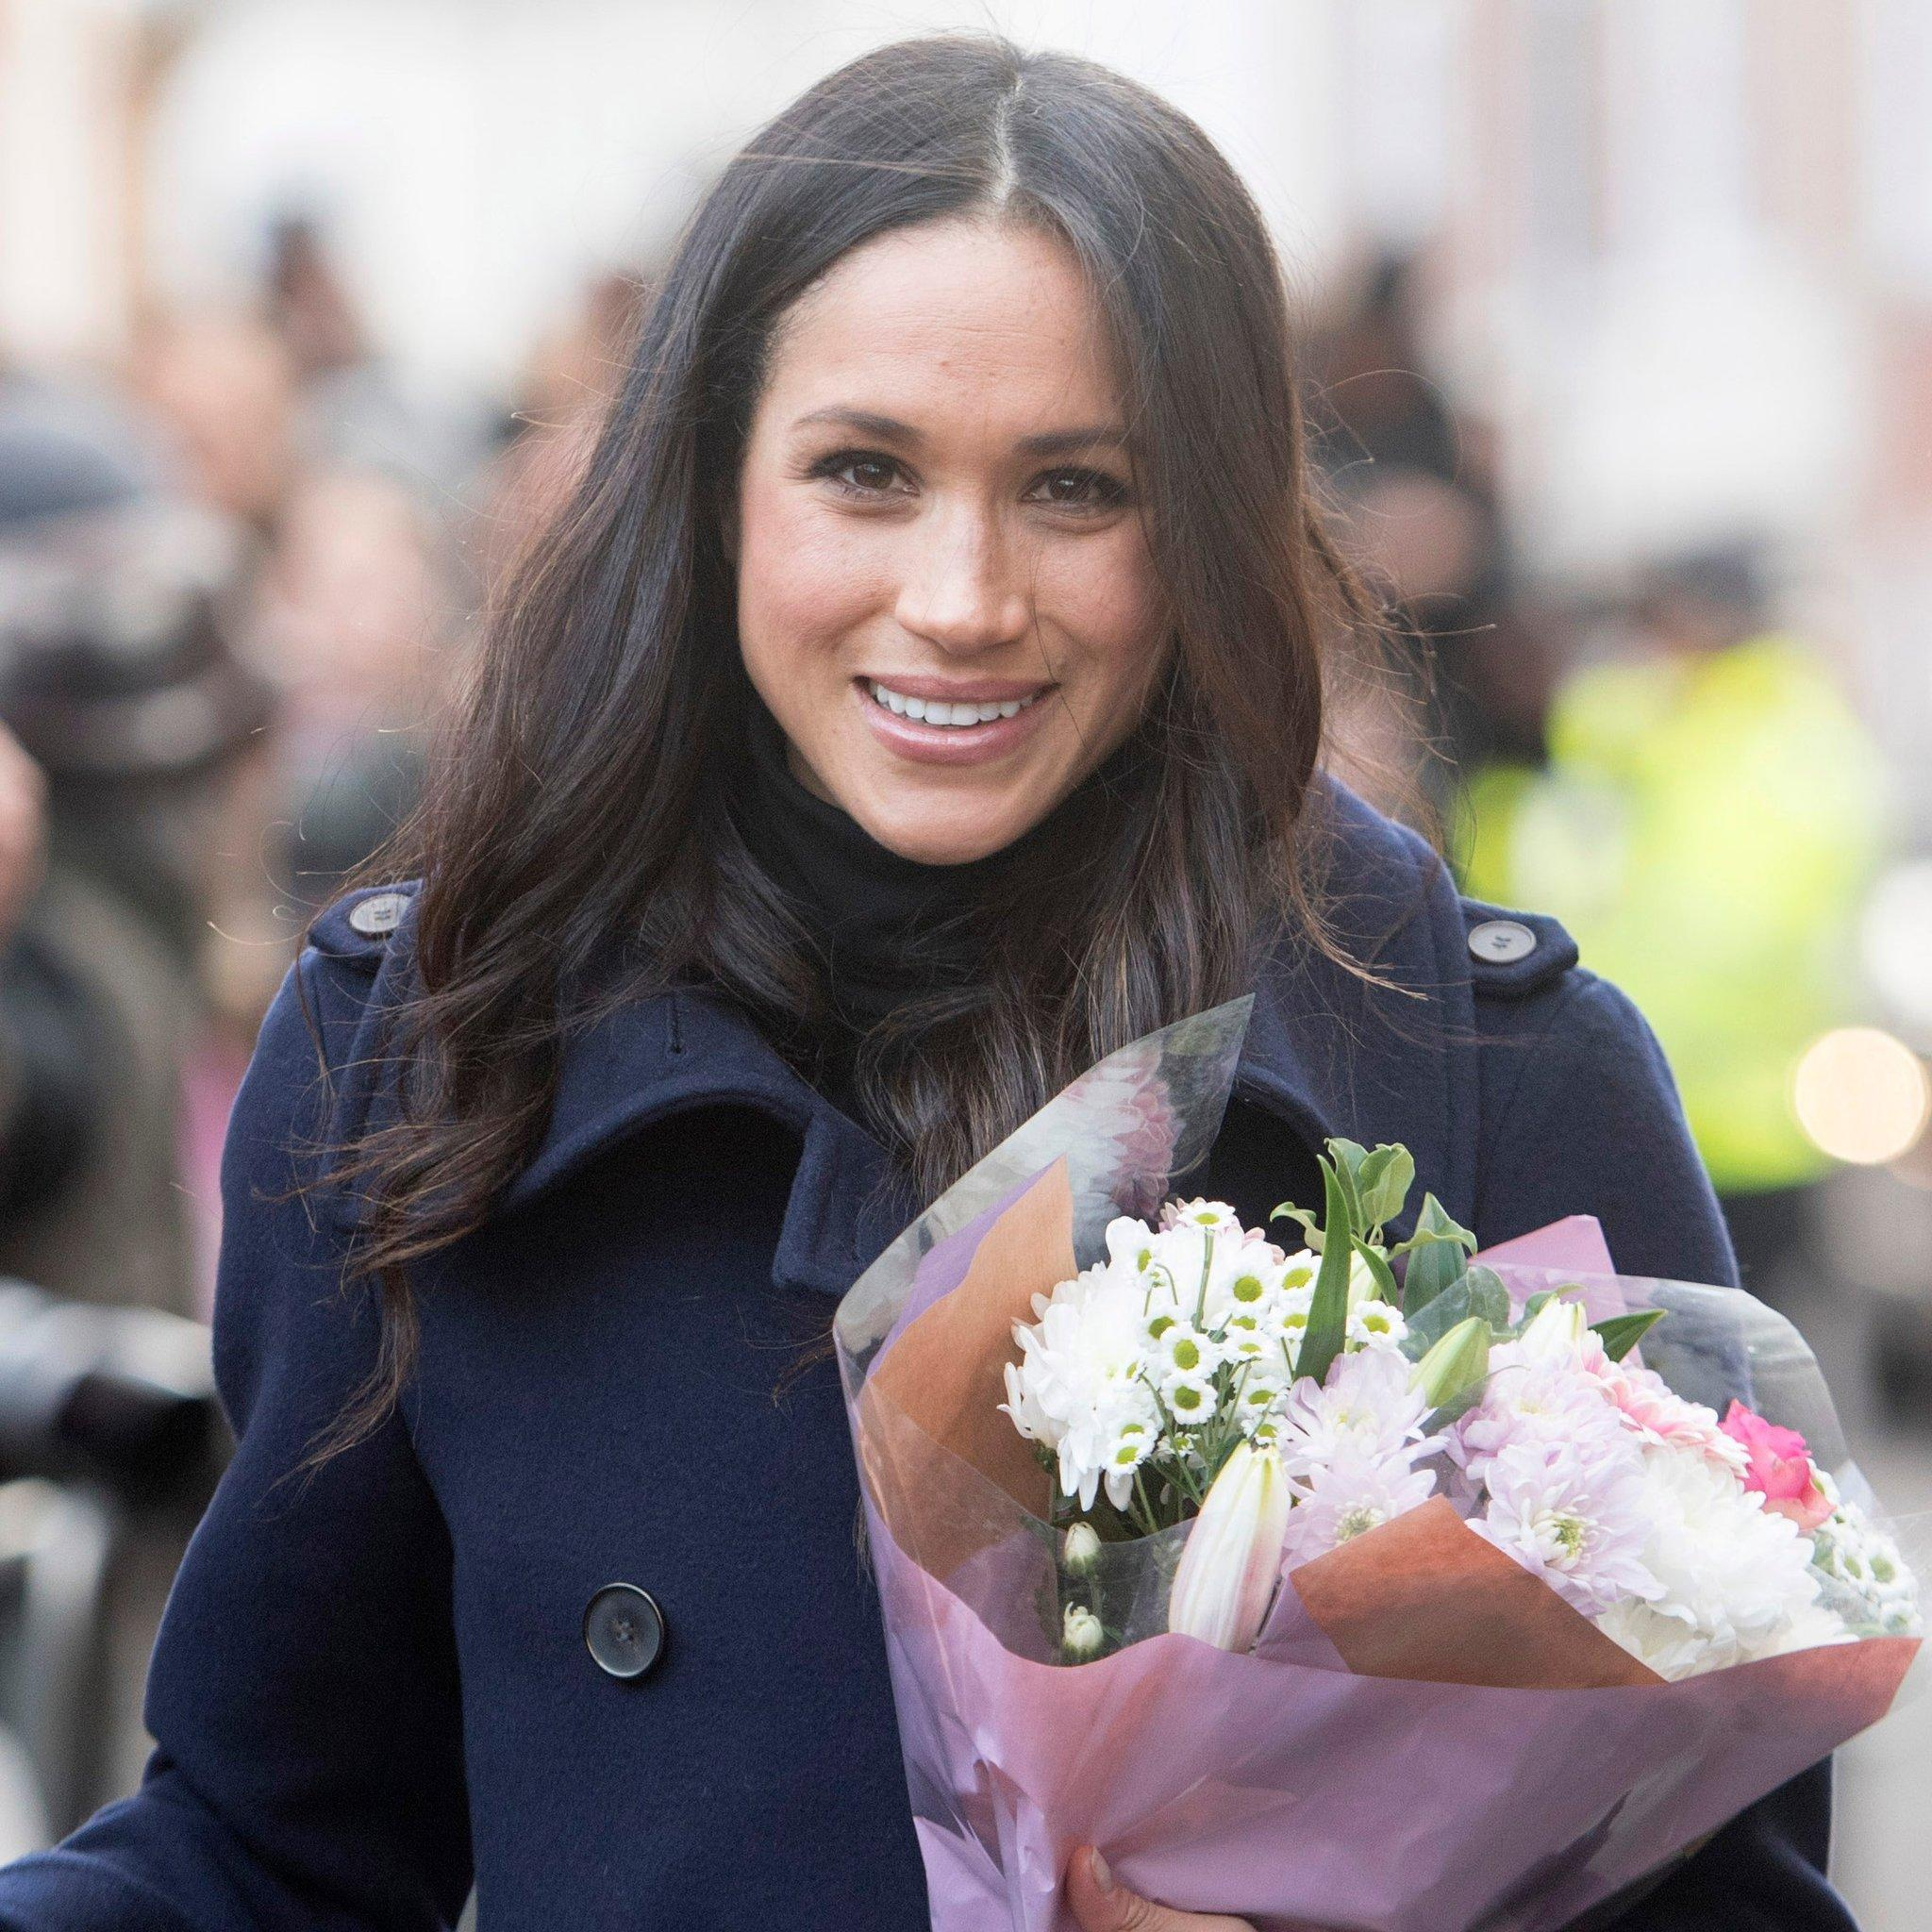 Meghan Markle Has Lived More Places Than You Probably Realized